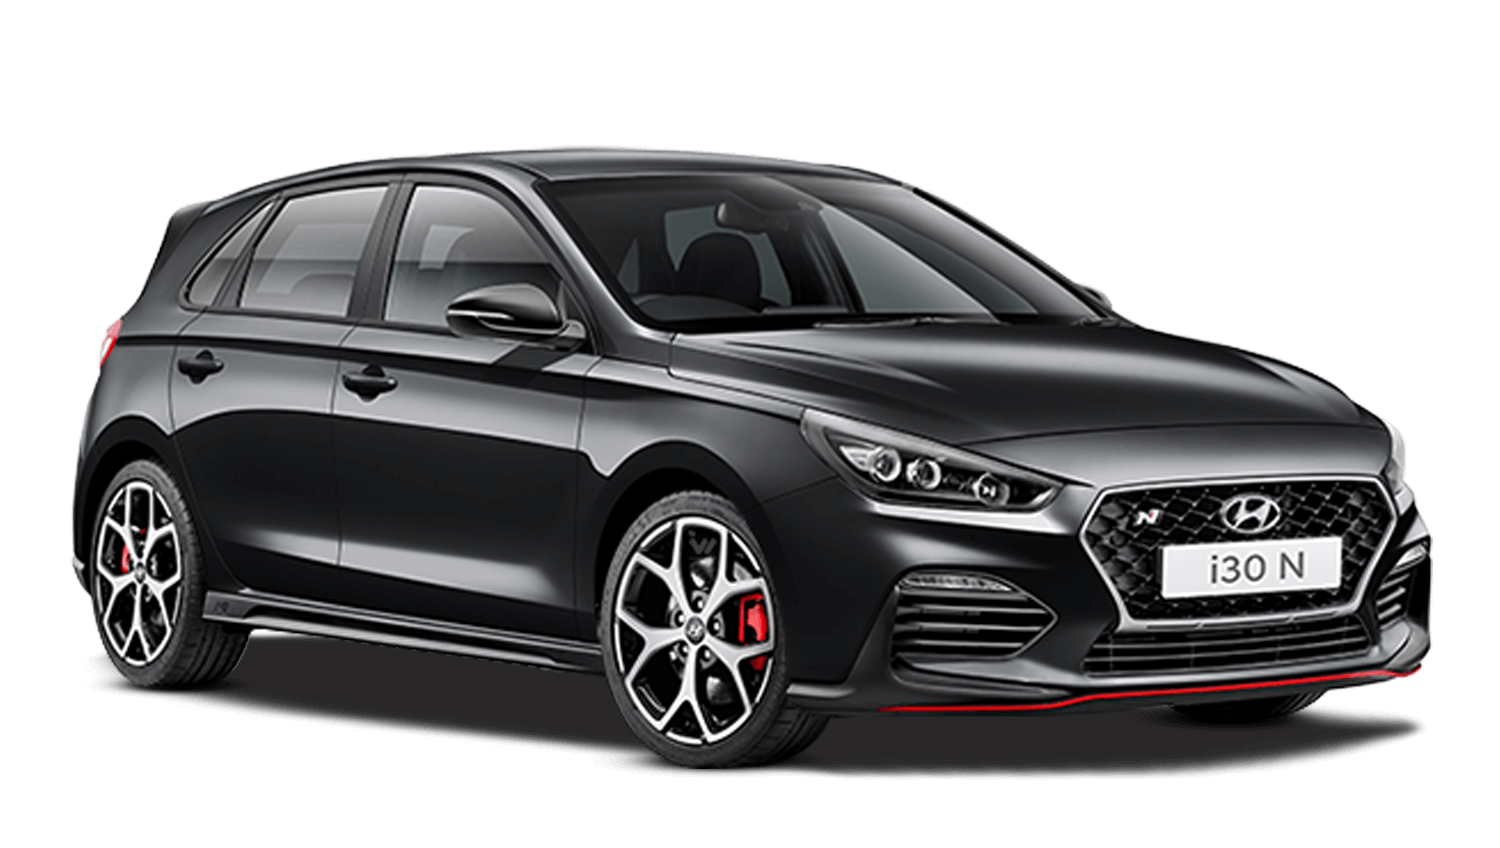 Phantom Black Hyundai I30 N